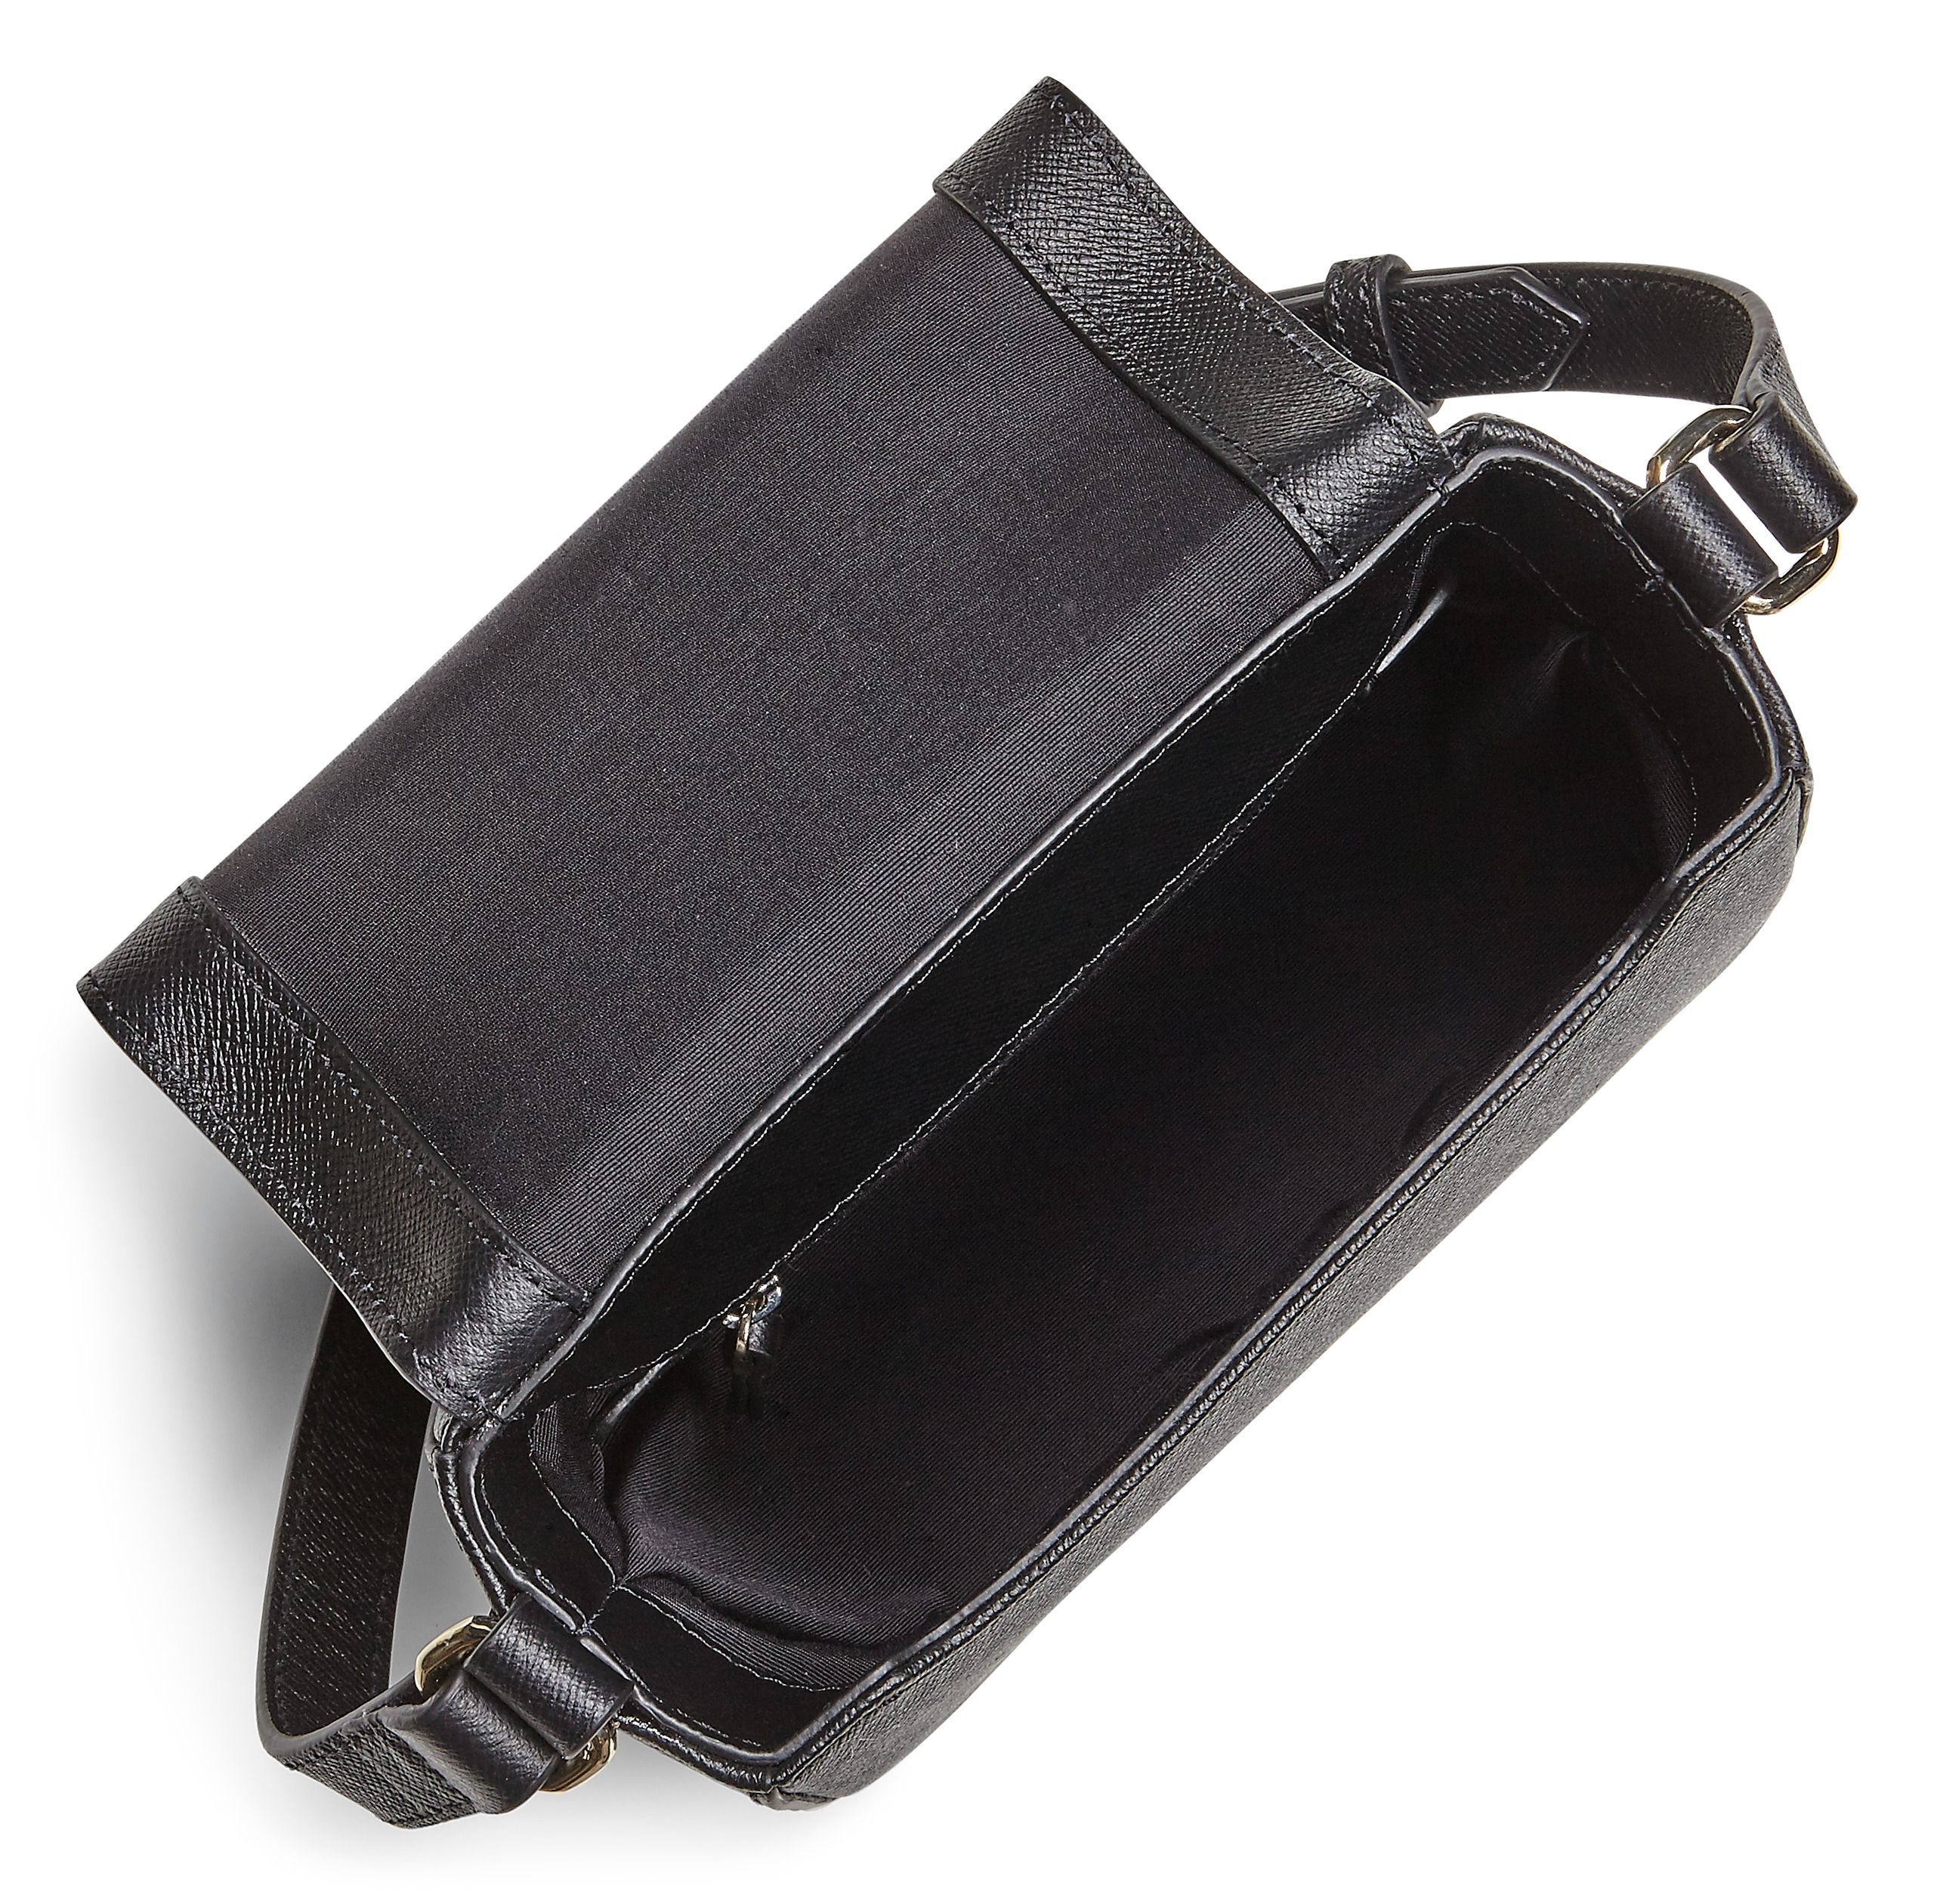 ... ECCO Iola Small Saddle BagECCO Iola Small Saddle Bag BLACK (90000) ...